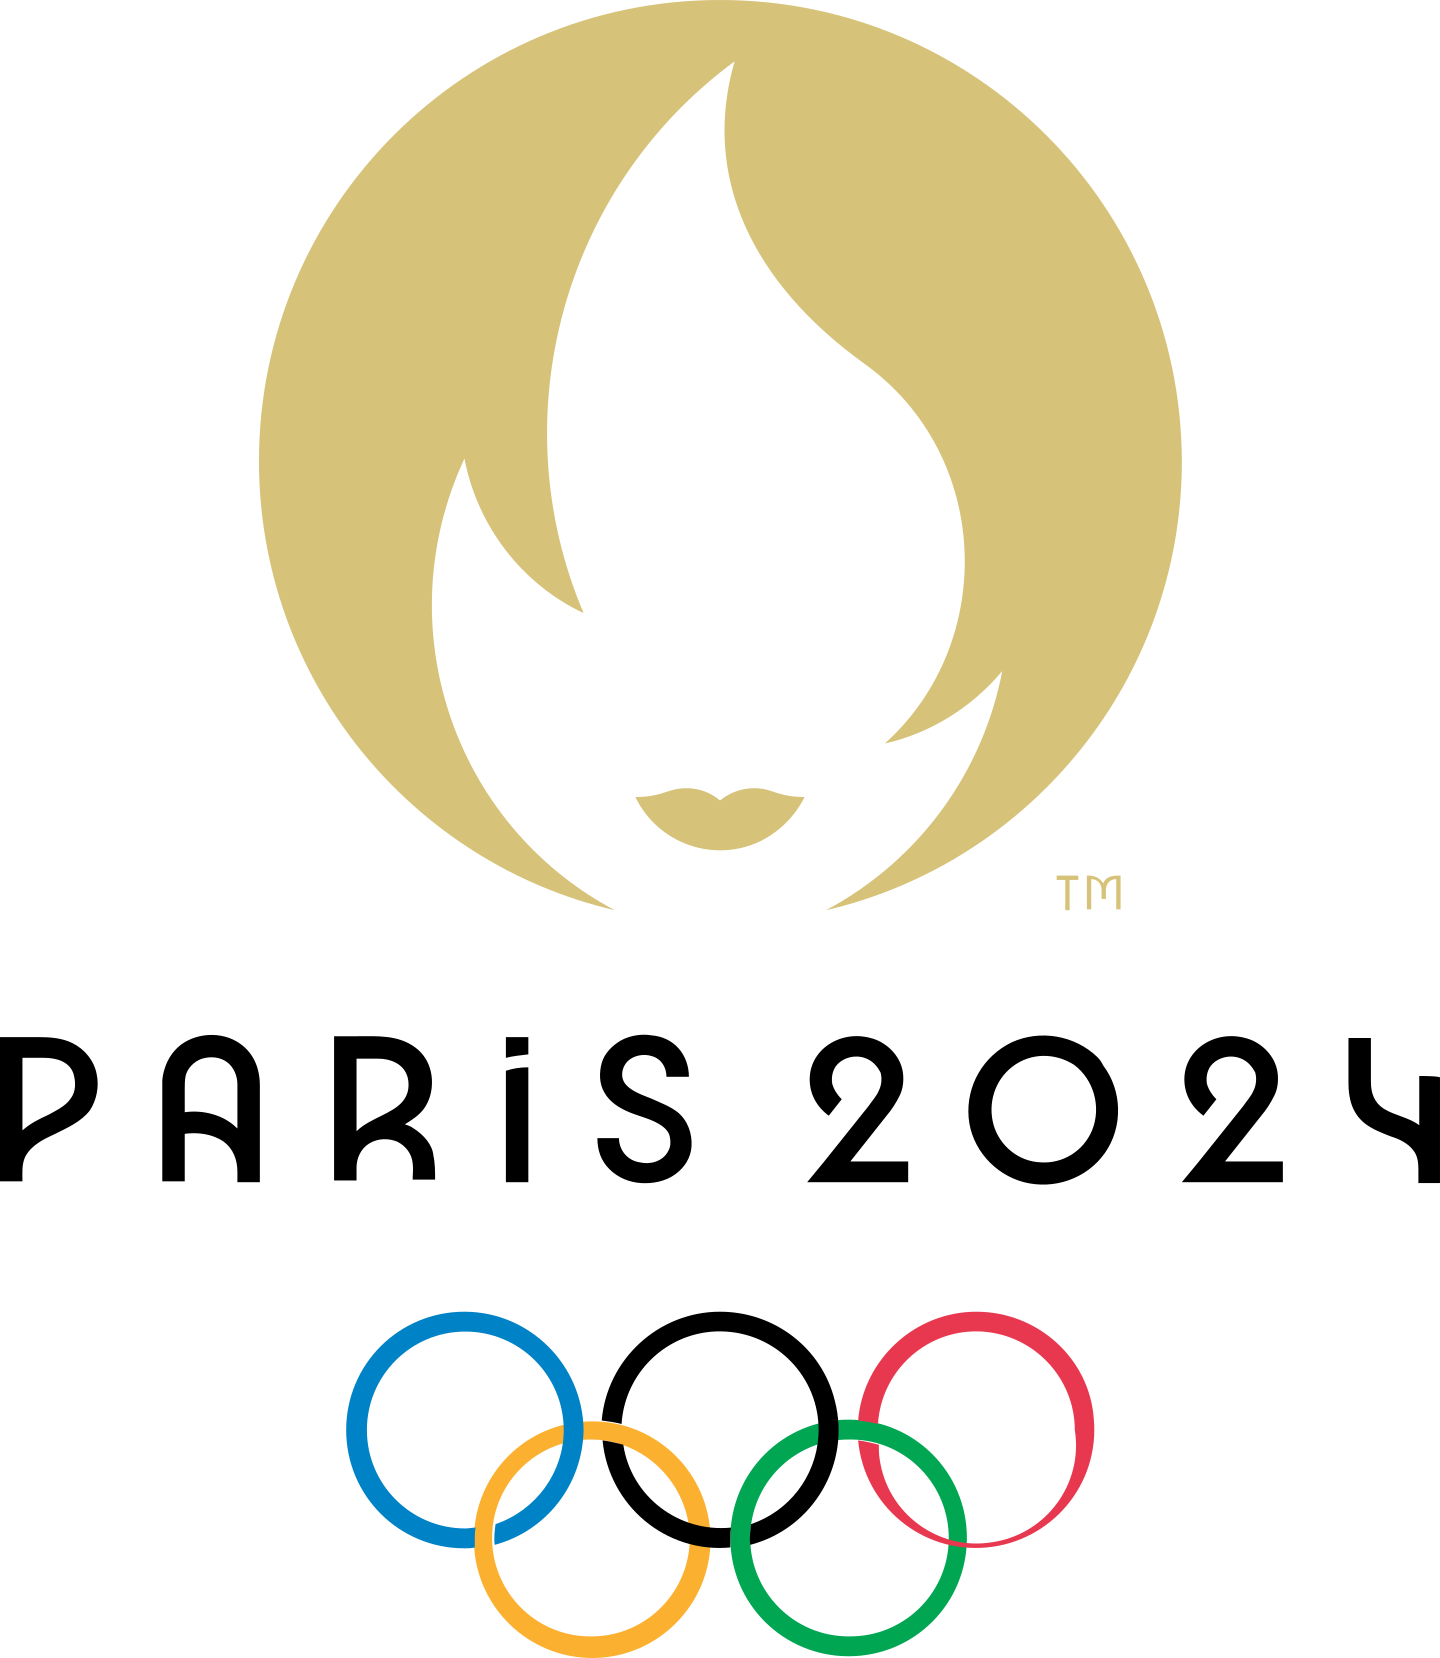 paris 2024 logo 2 - Paris 2024 Logo